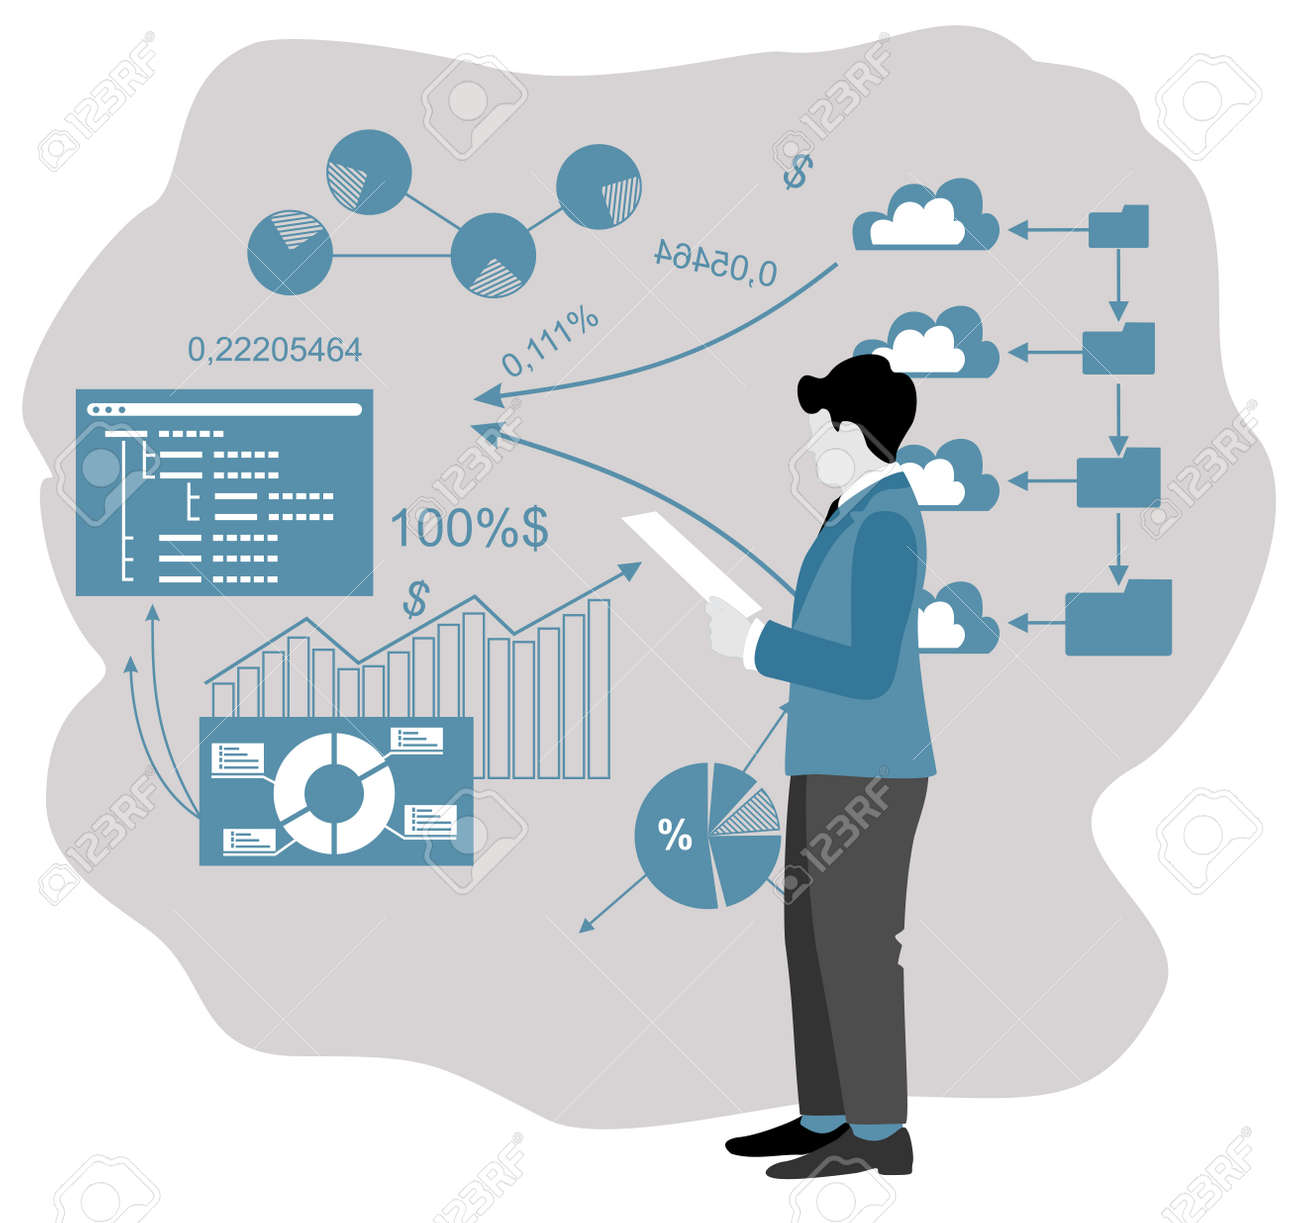 Enterprise strategy development abstract concept. Business Intelligence and business rule, big data analytics, application software, data management metaphor. Development of a commercial enterprise - 169743662